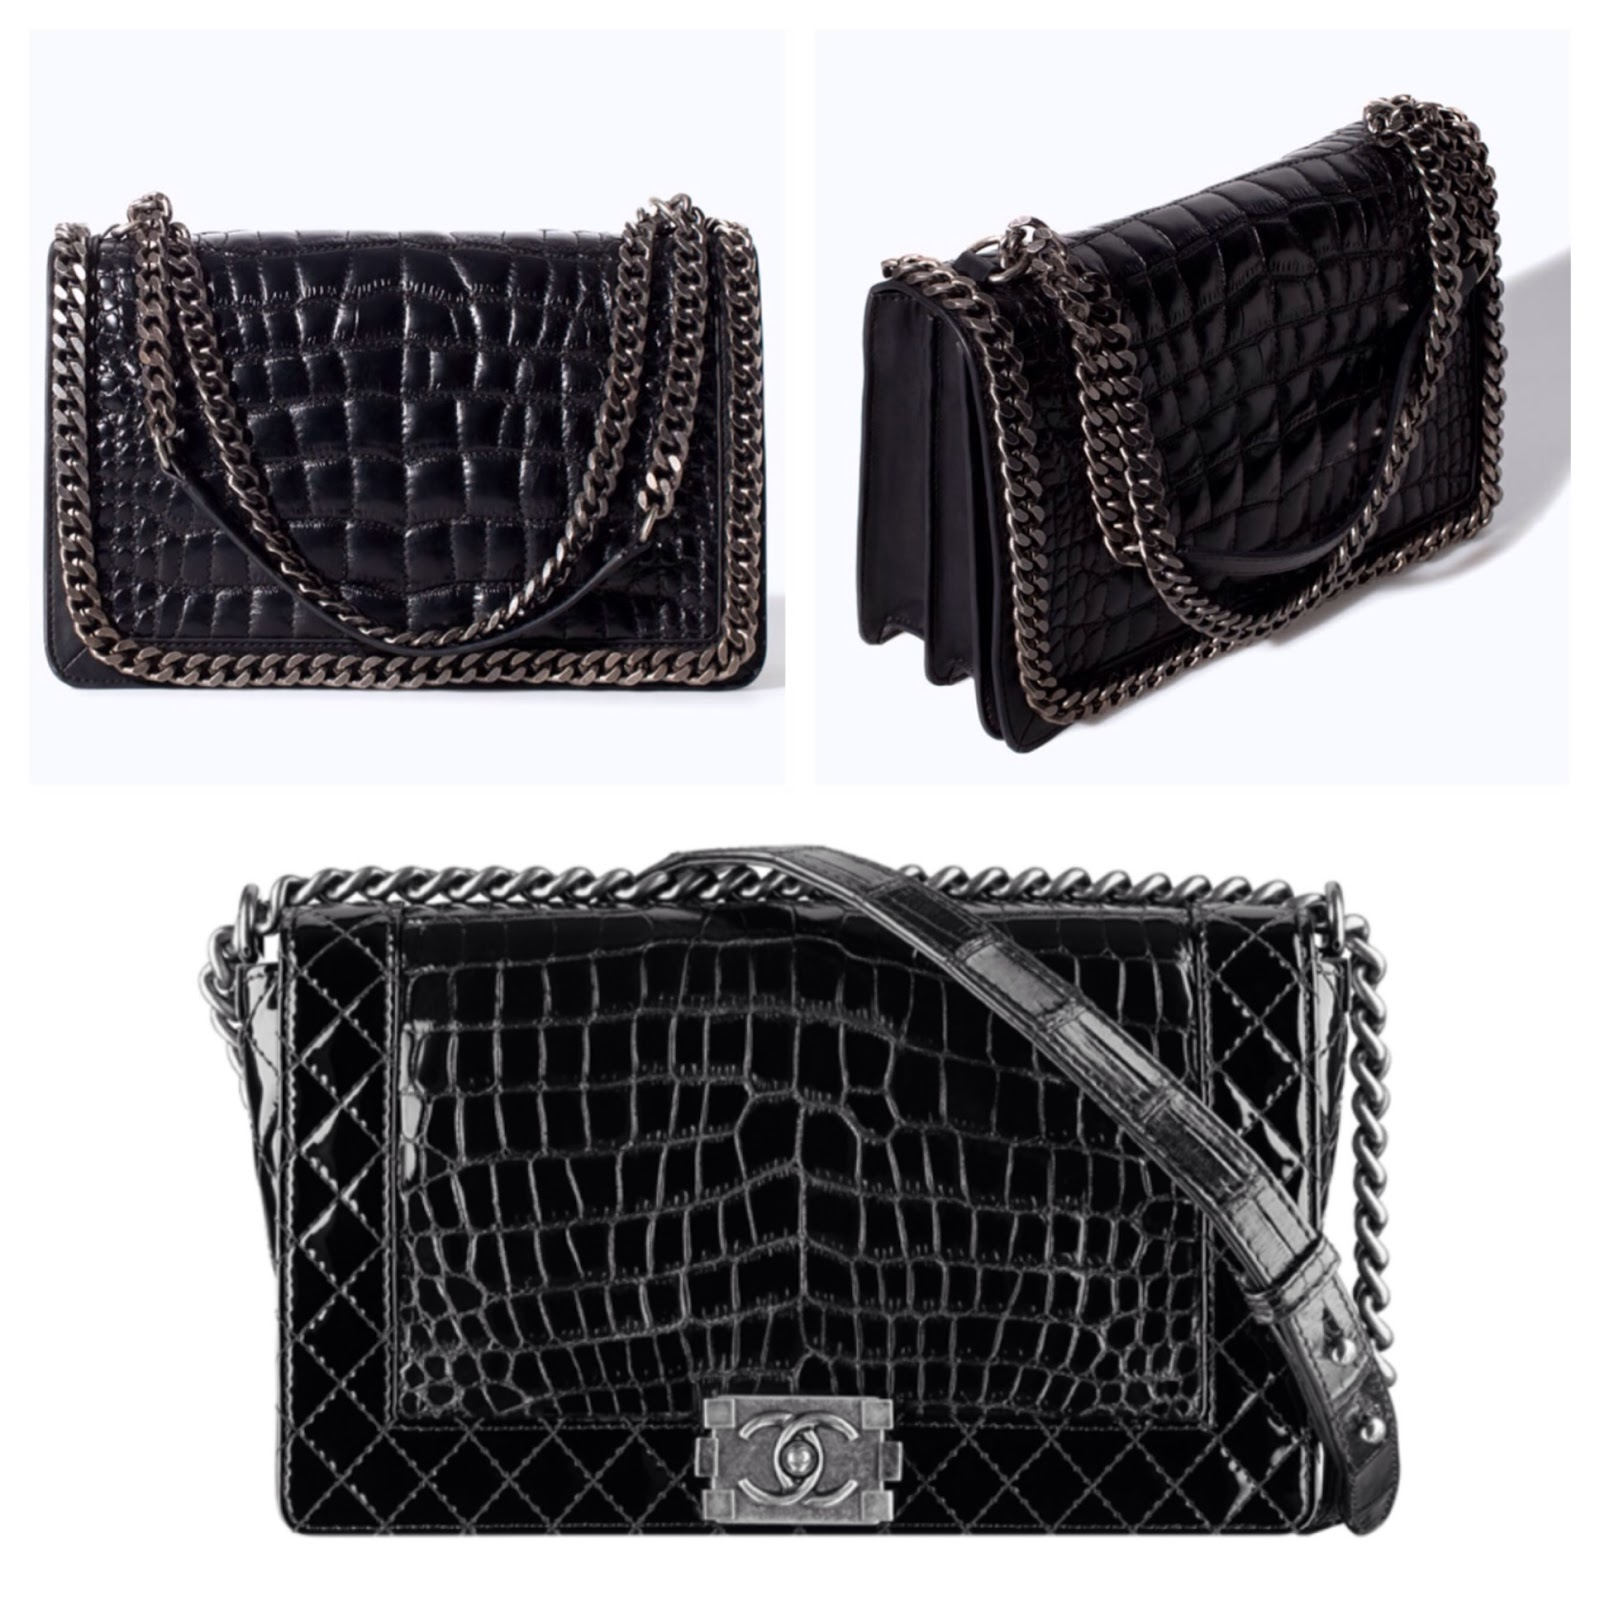 c53f8f441e34 Top: multiple views of Crocodile pattern leather